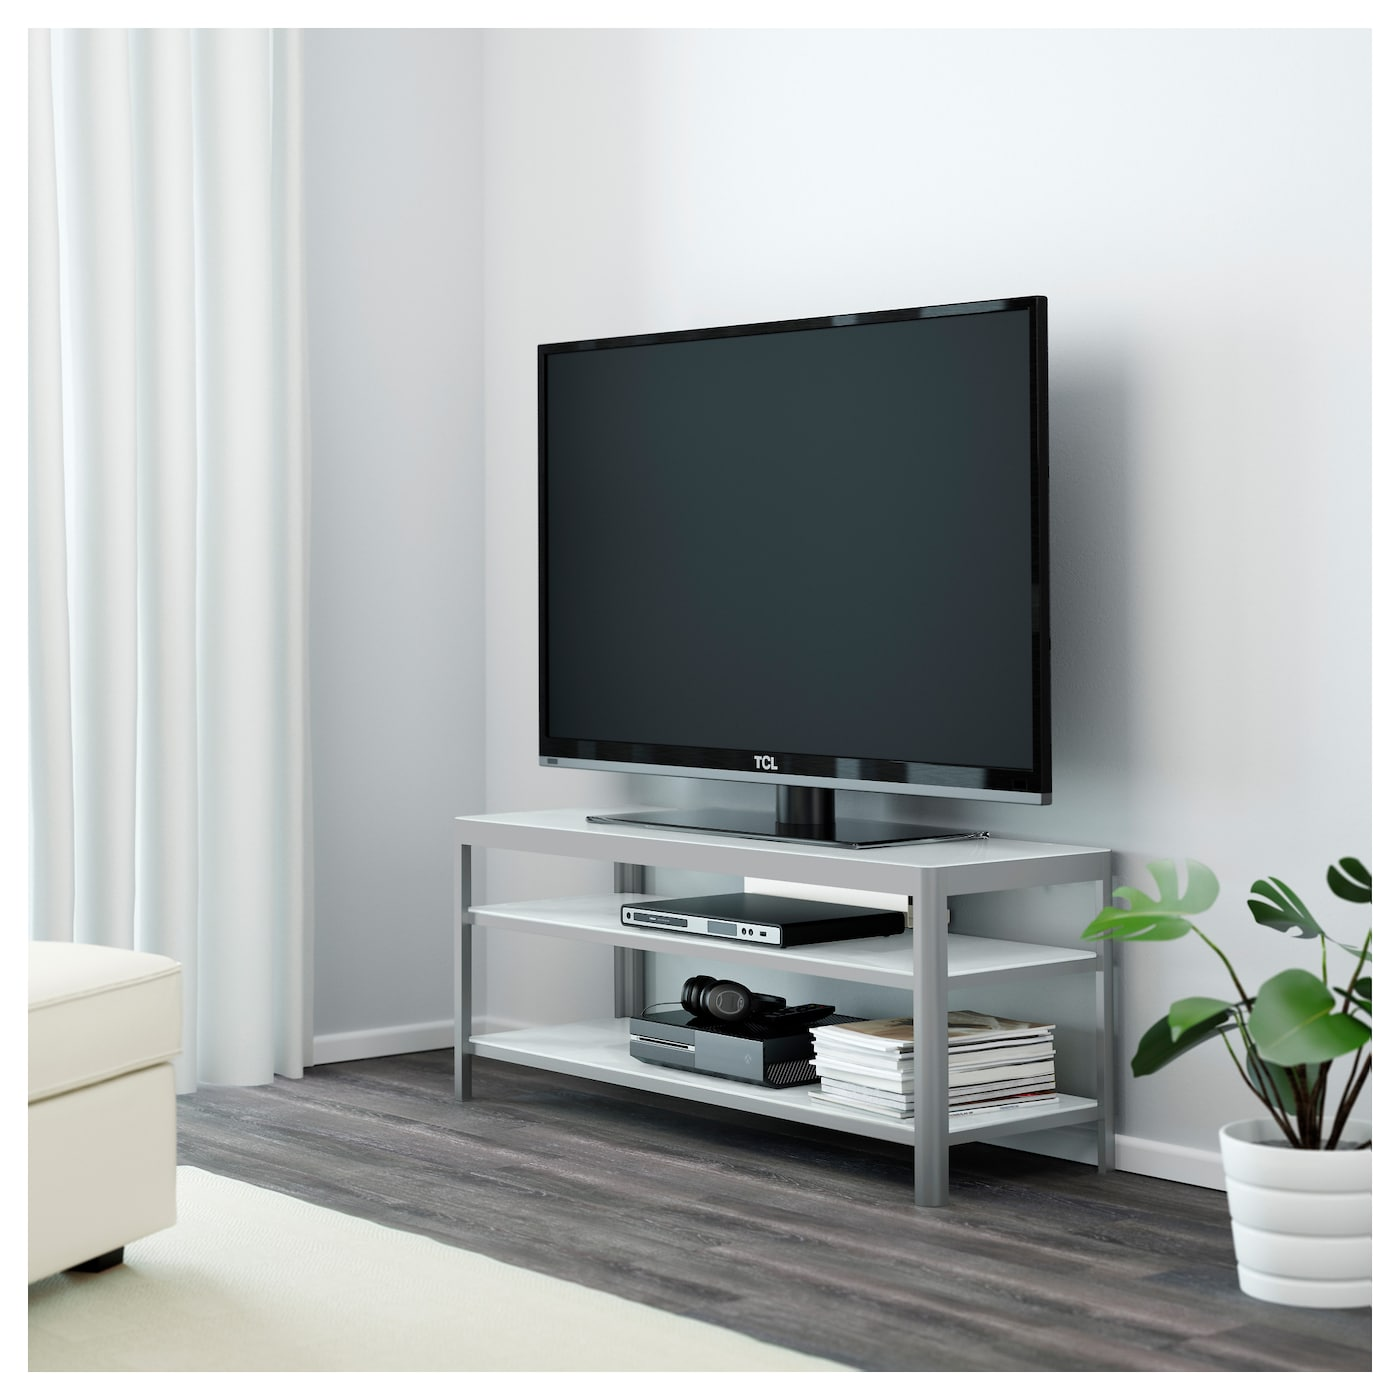 gloss media bench white storage full tv besta cm cabinets stands stain furniture x uk high ikea hemnes size lack brusali